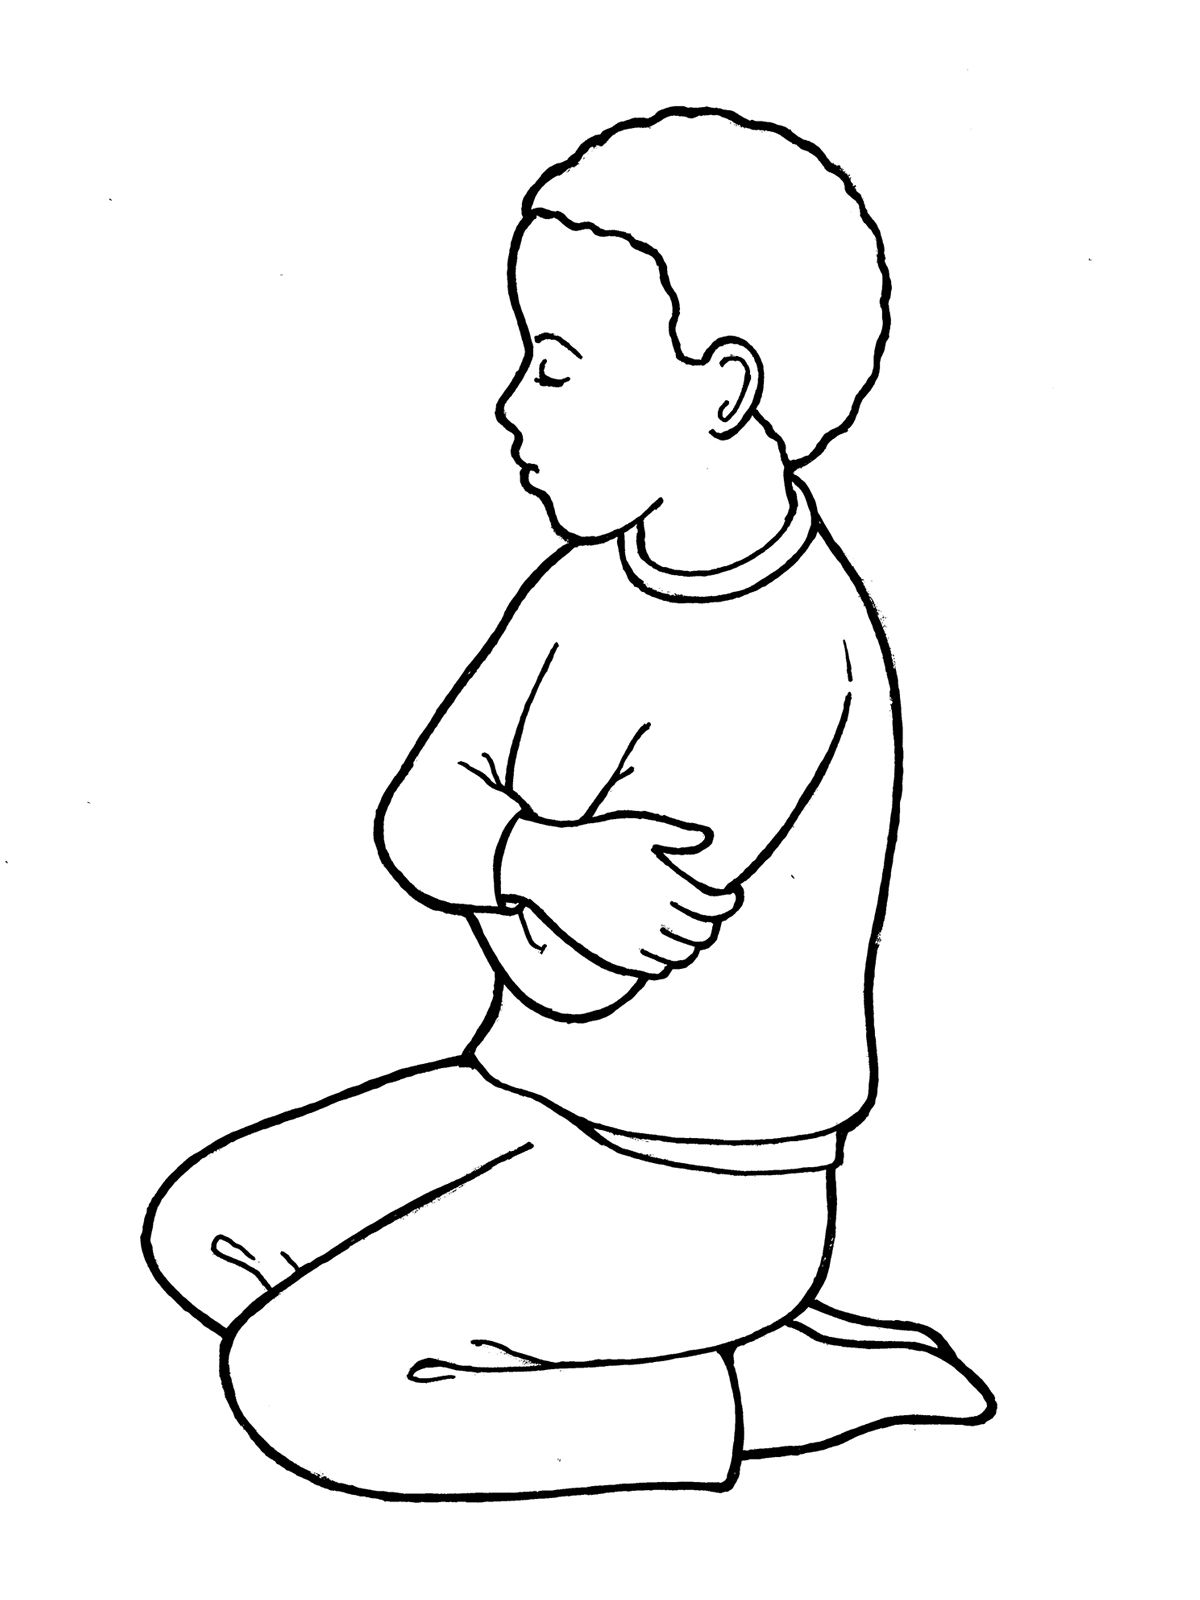 Child Praying Coloring Page At Getcolorings